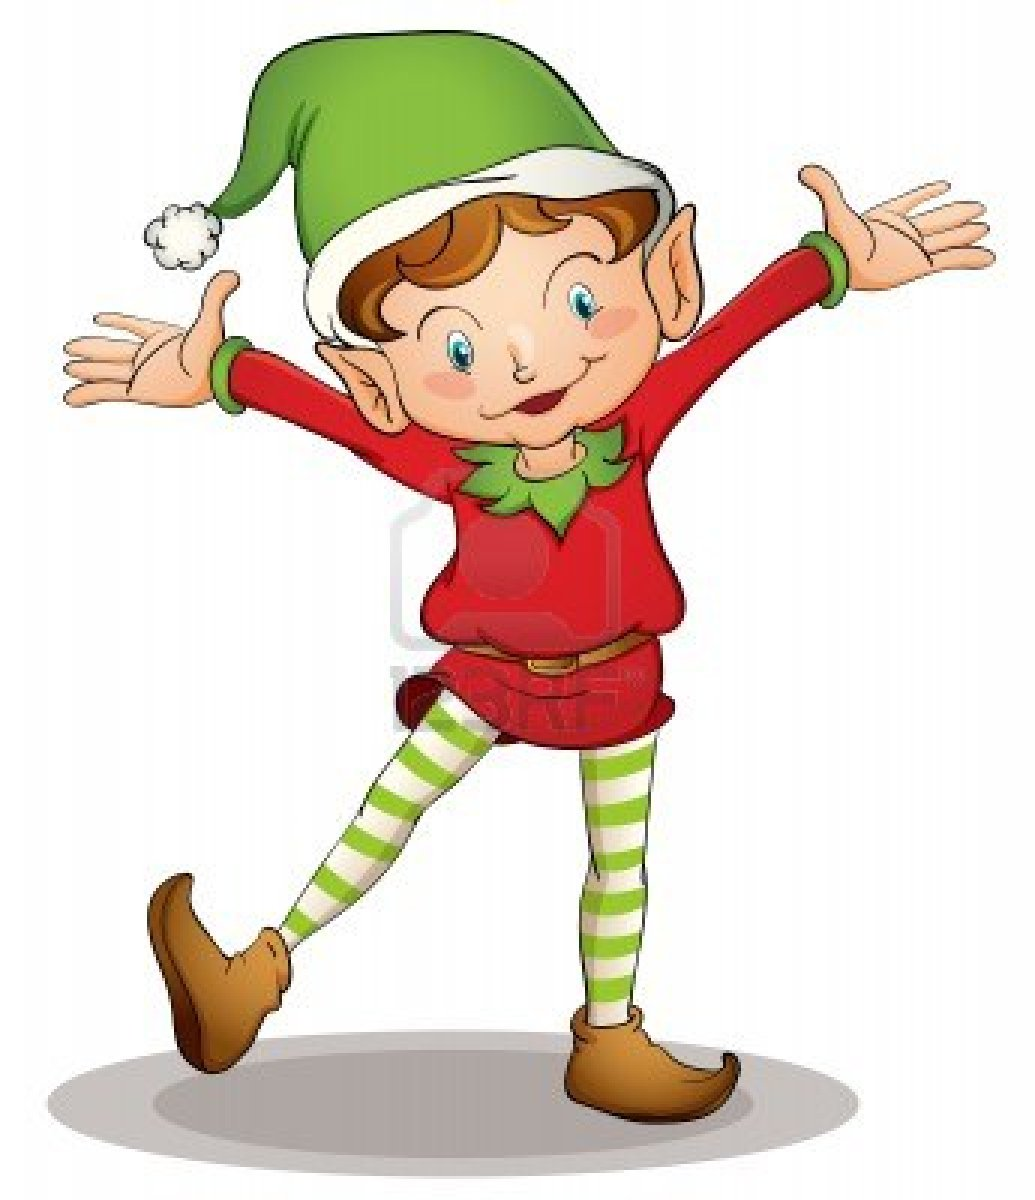 cute elf clipart at getdrawings com free for personal use cute elf rh getdrawings com clip art elves ears clipart elvis presley's music is a day wasted